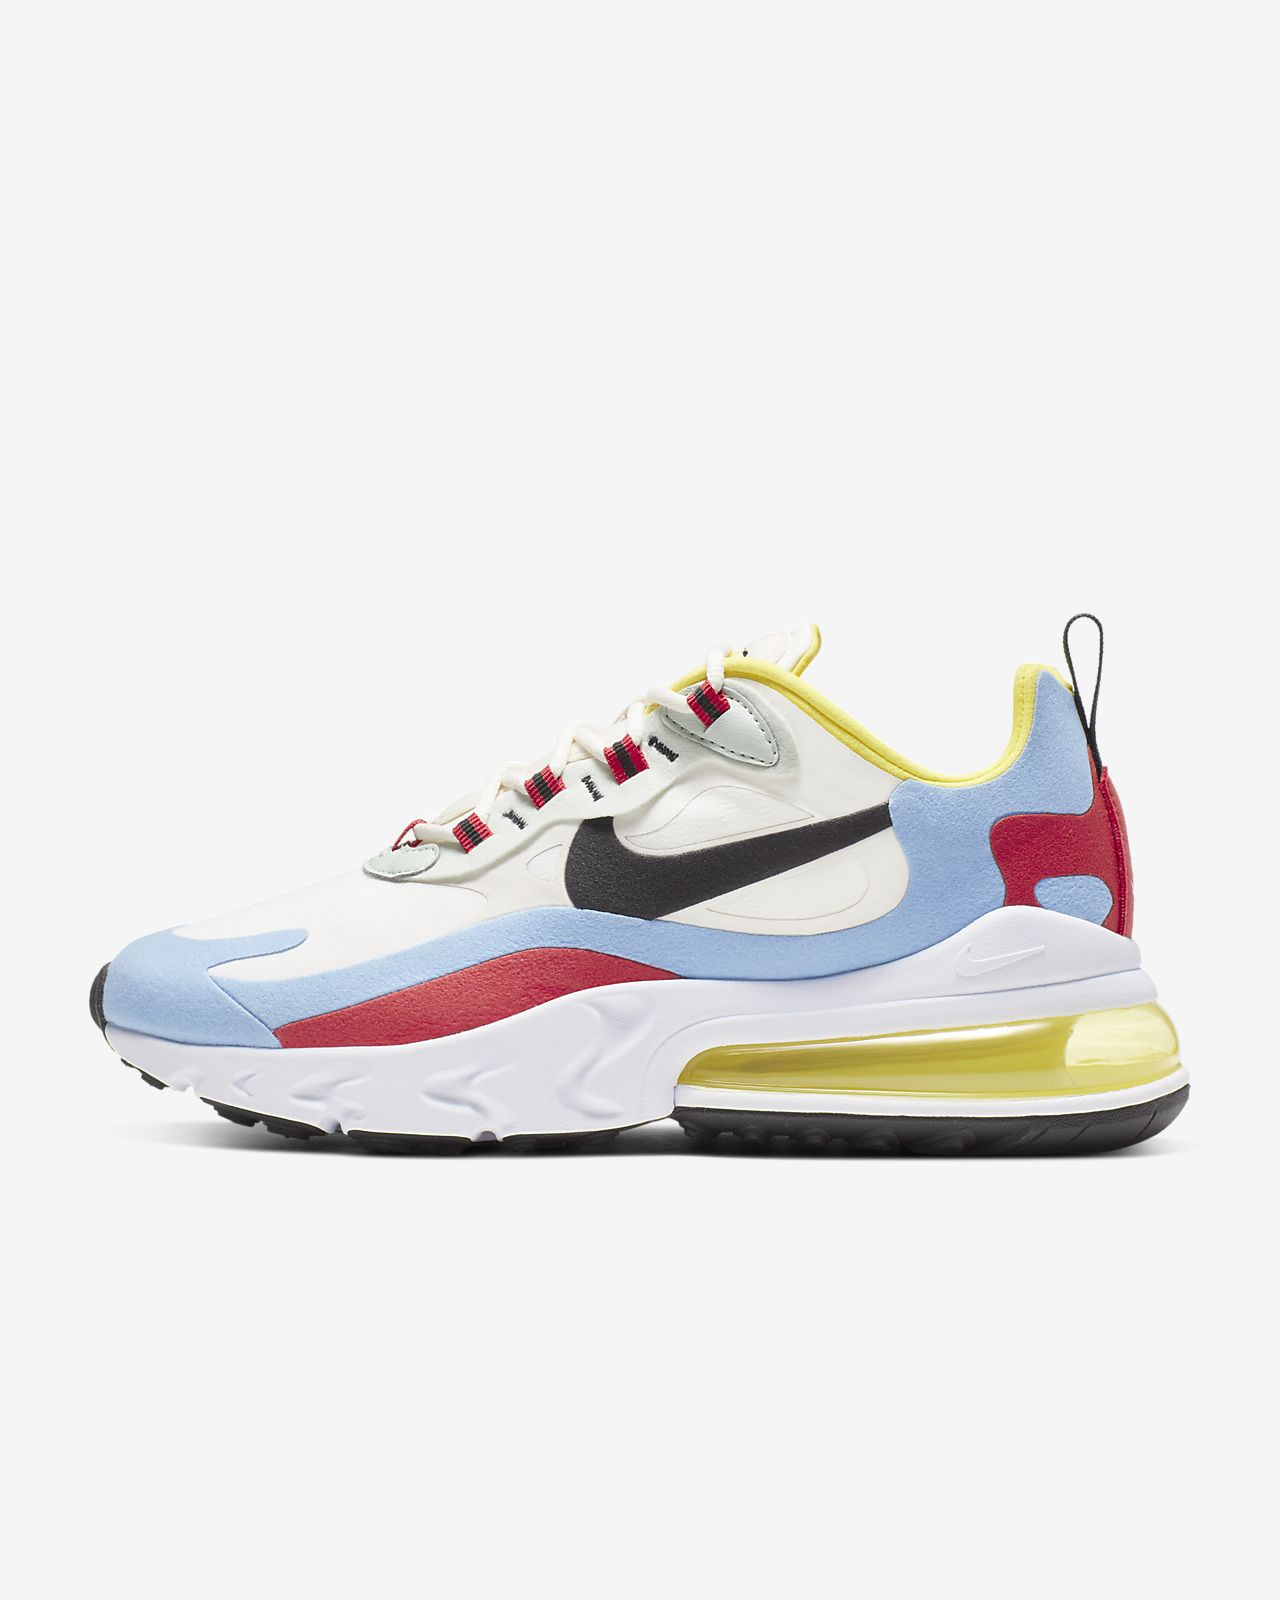 Nike Air Max 270 React: Release Date & Info